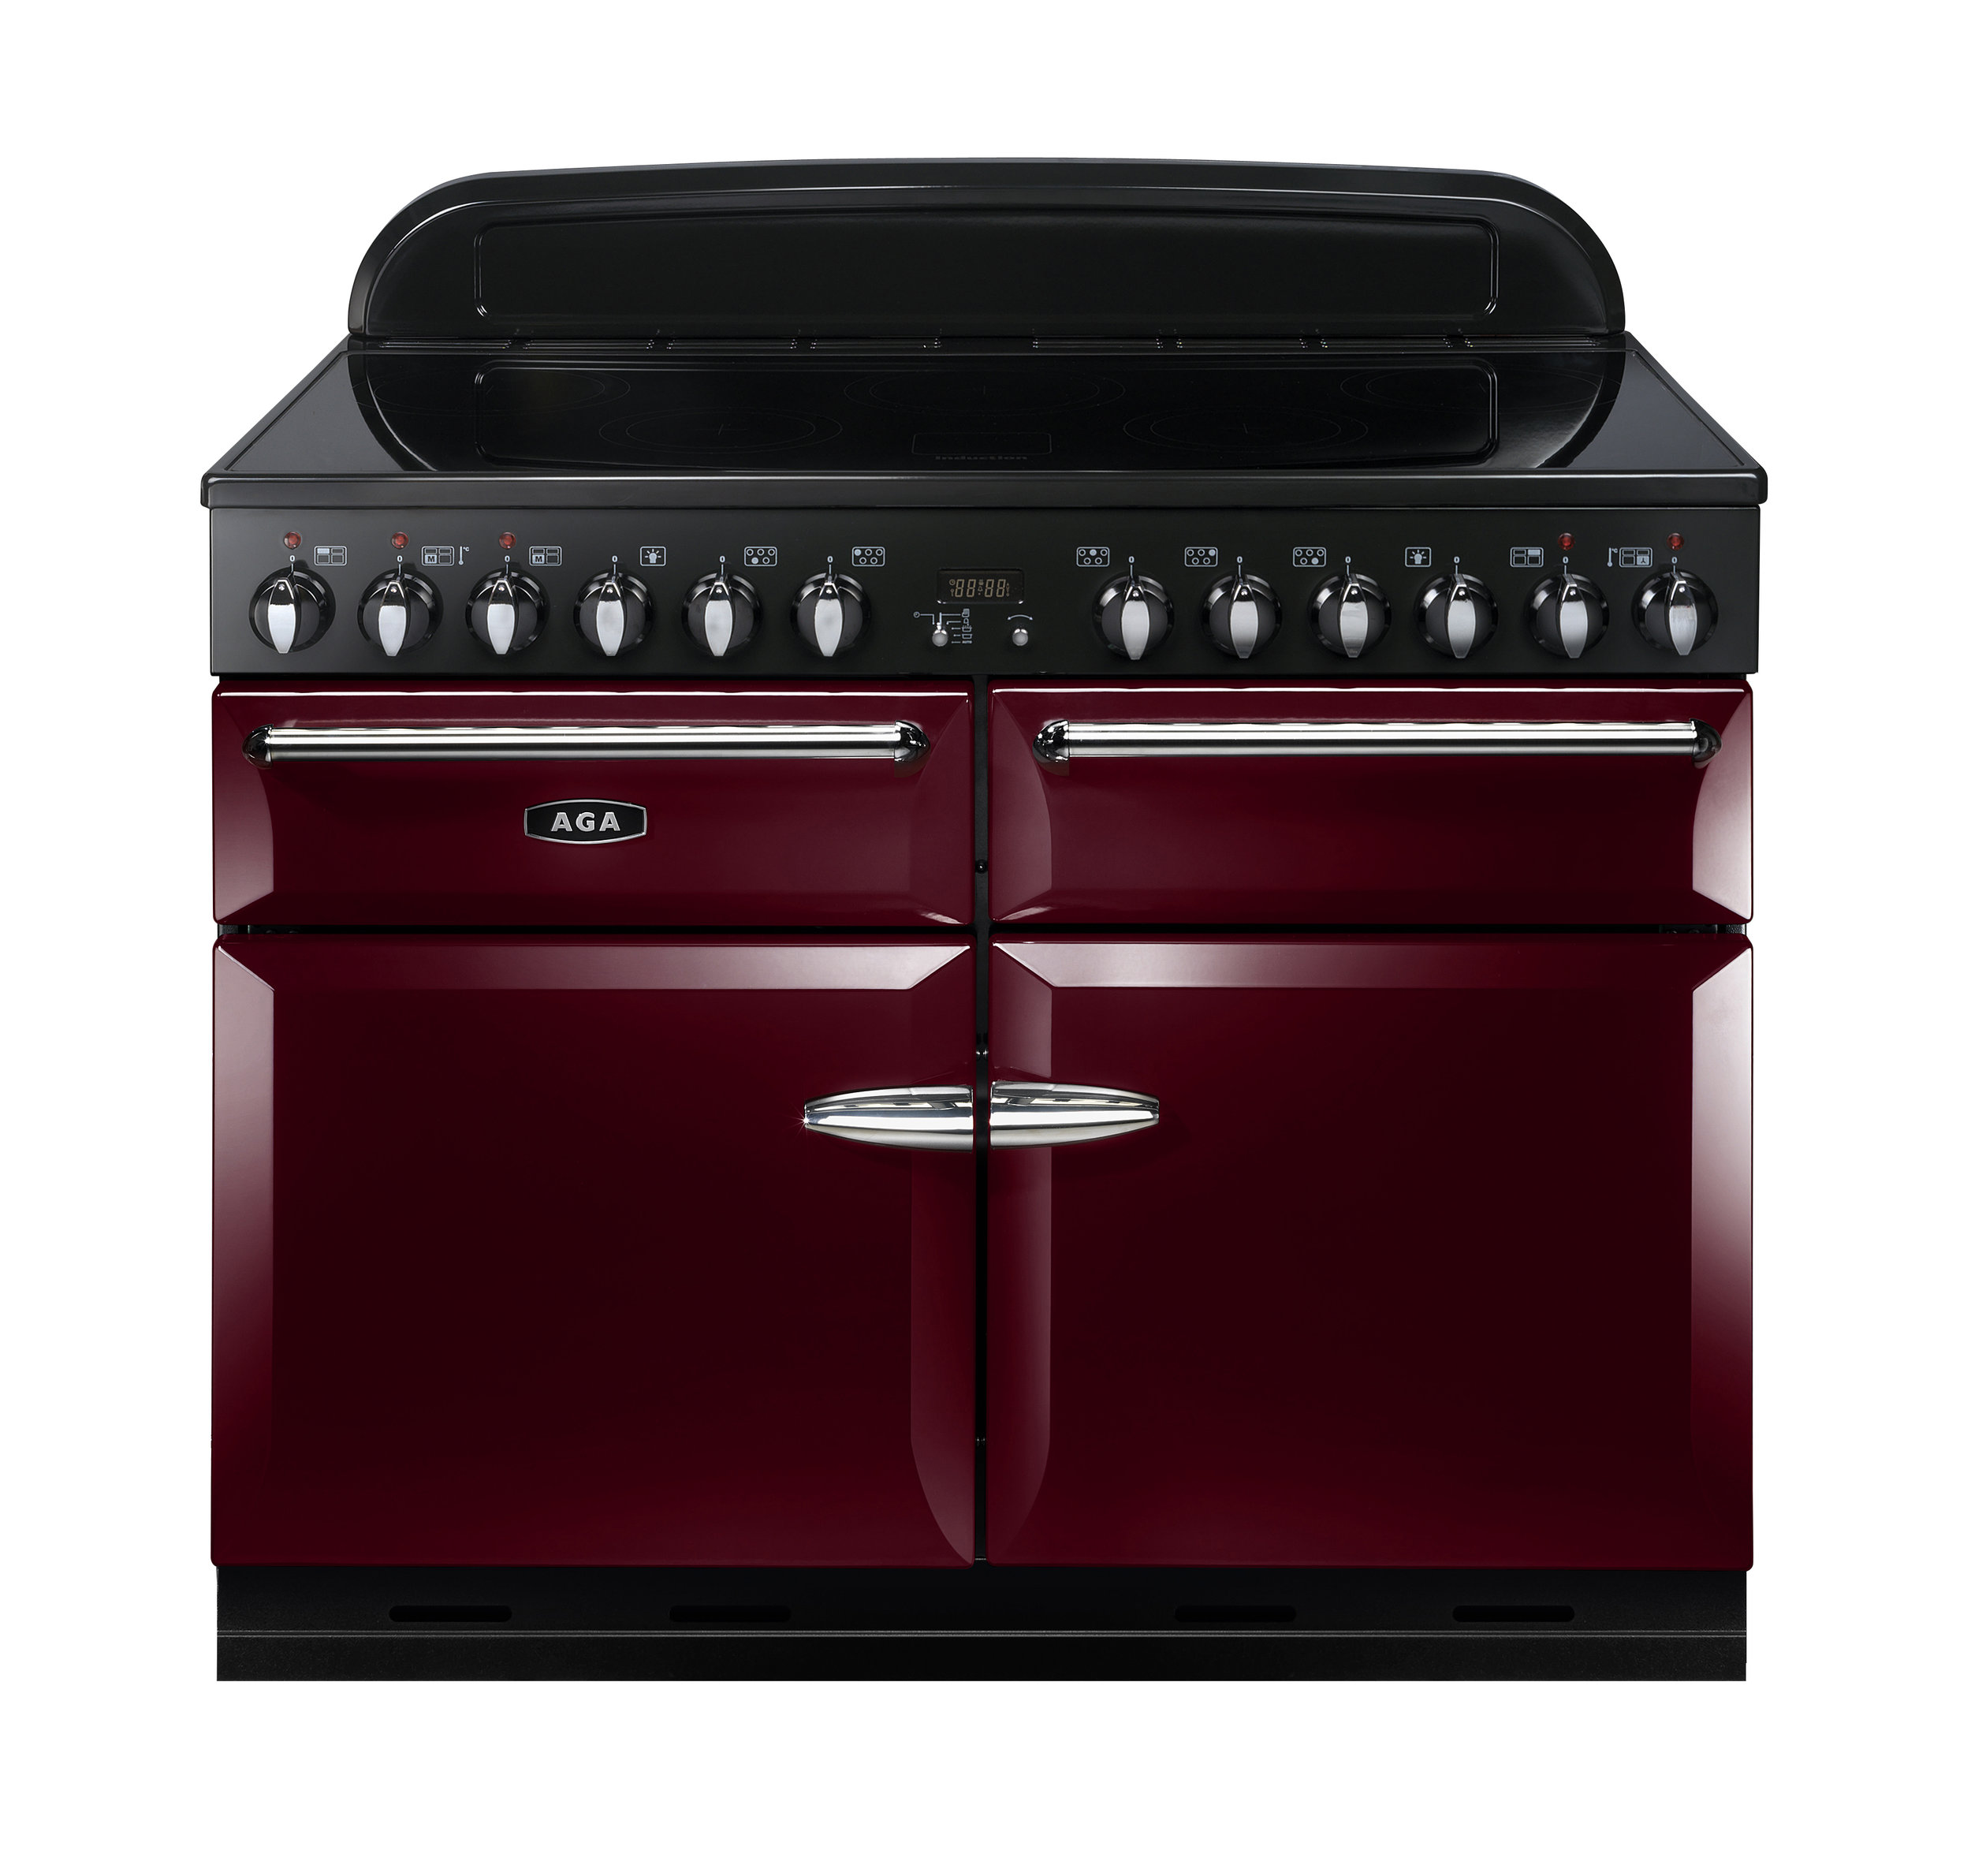 AGA_Masterchef 110_Induction_CRANBERRY_Cutout_1.jpg